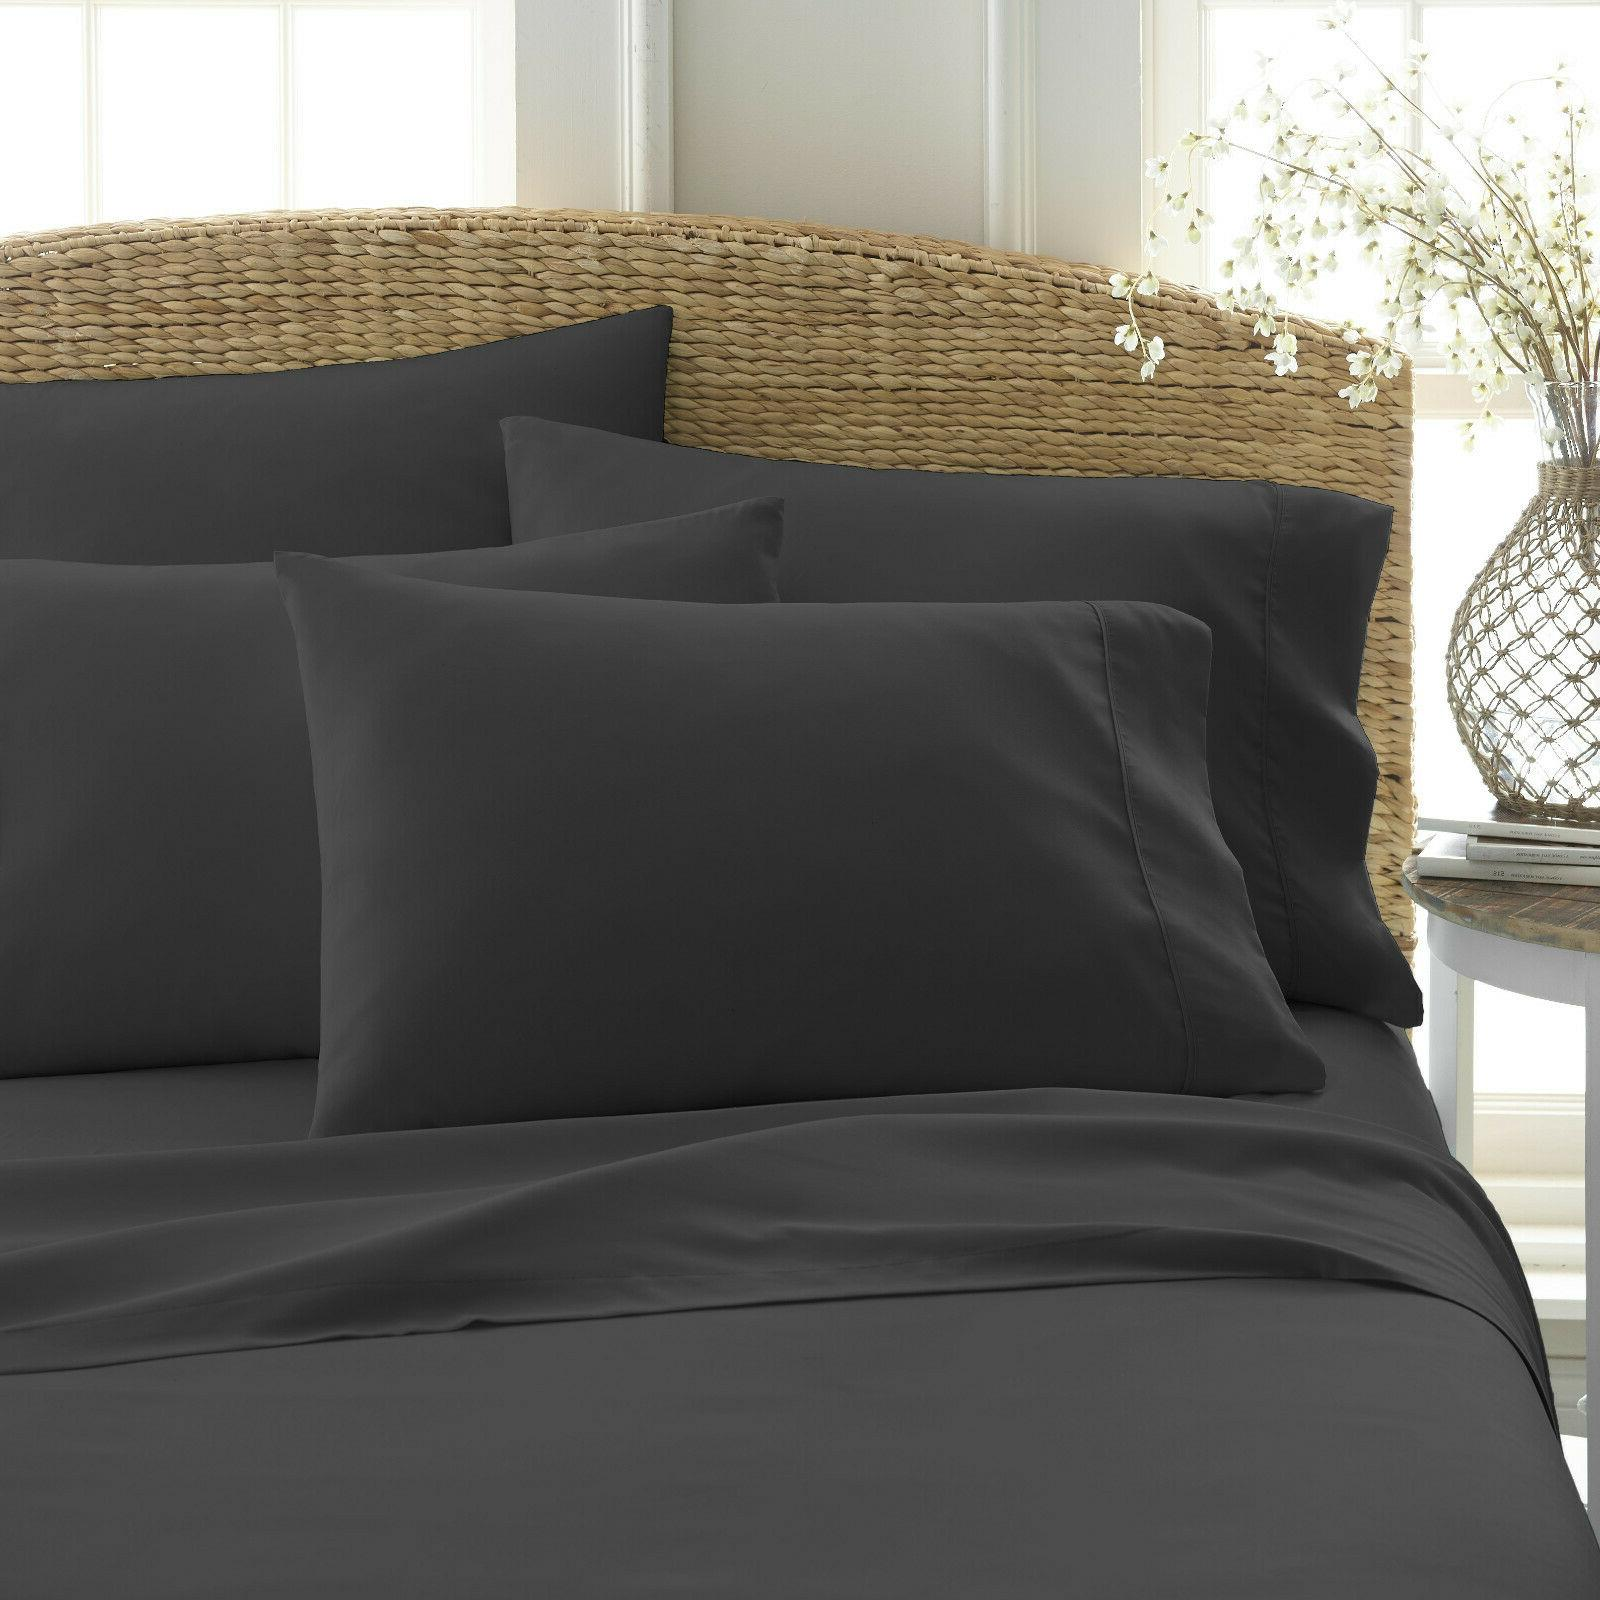 6 Piece 2100 Count Super Soft Egyptian Bamboo Bed Sheet Set